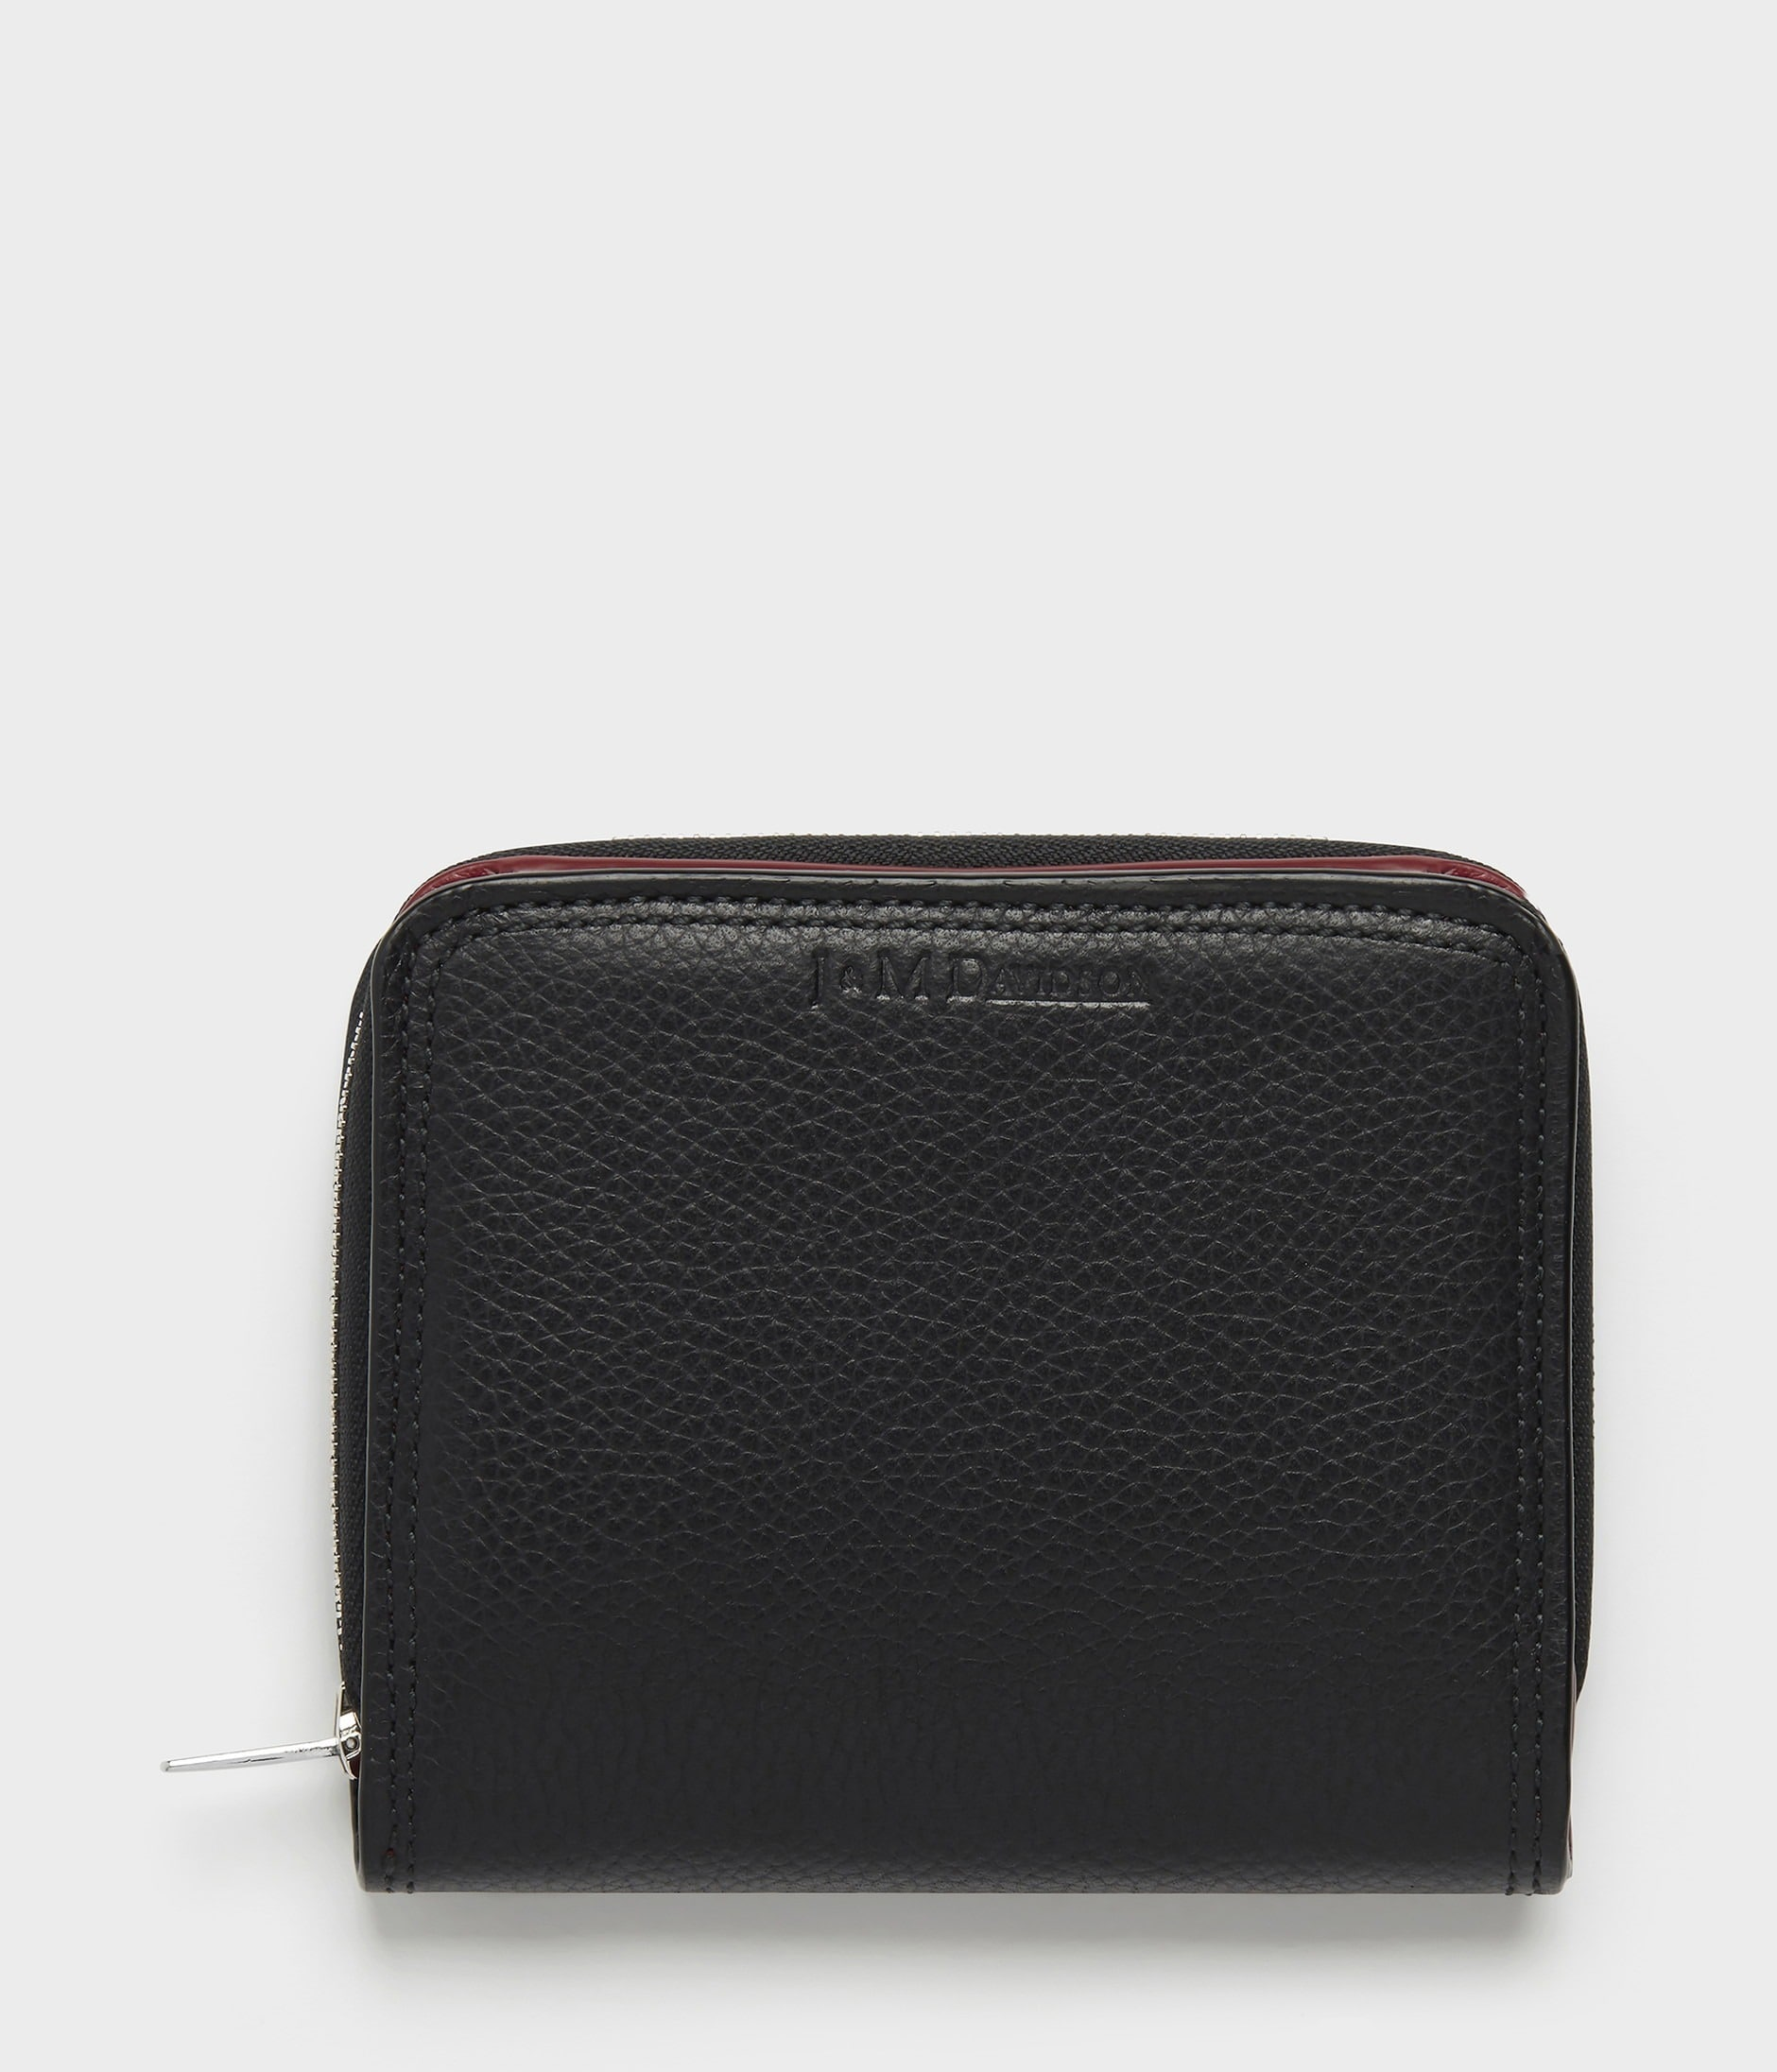 COIN/CARD WALLET 詳細画像 BLACK 2